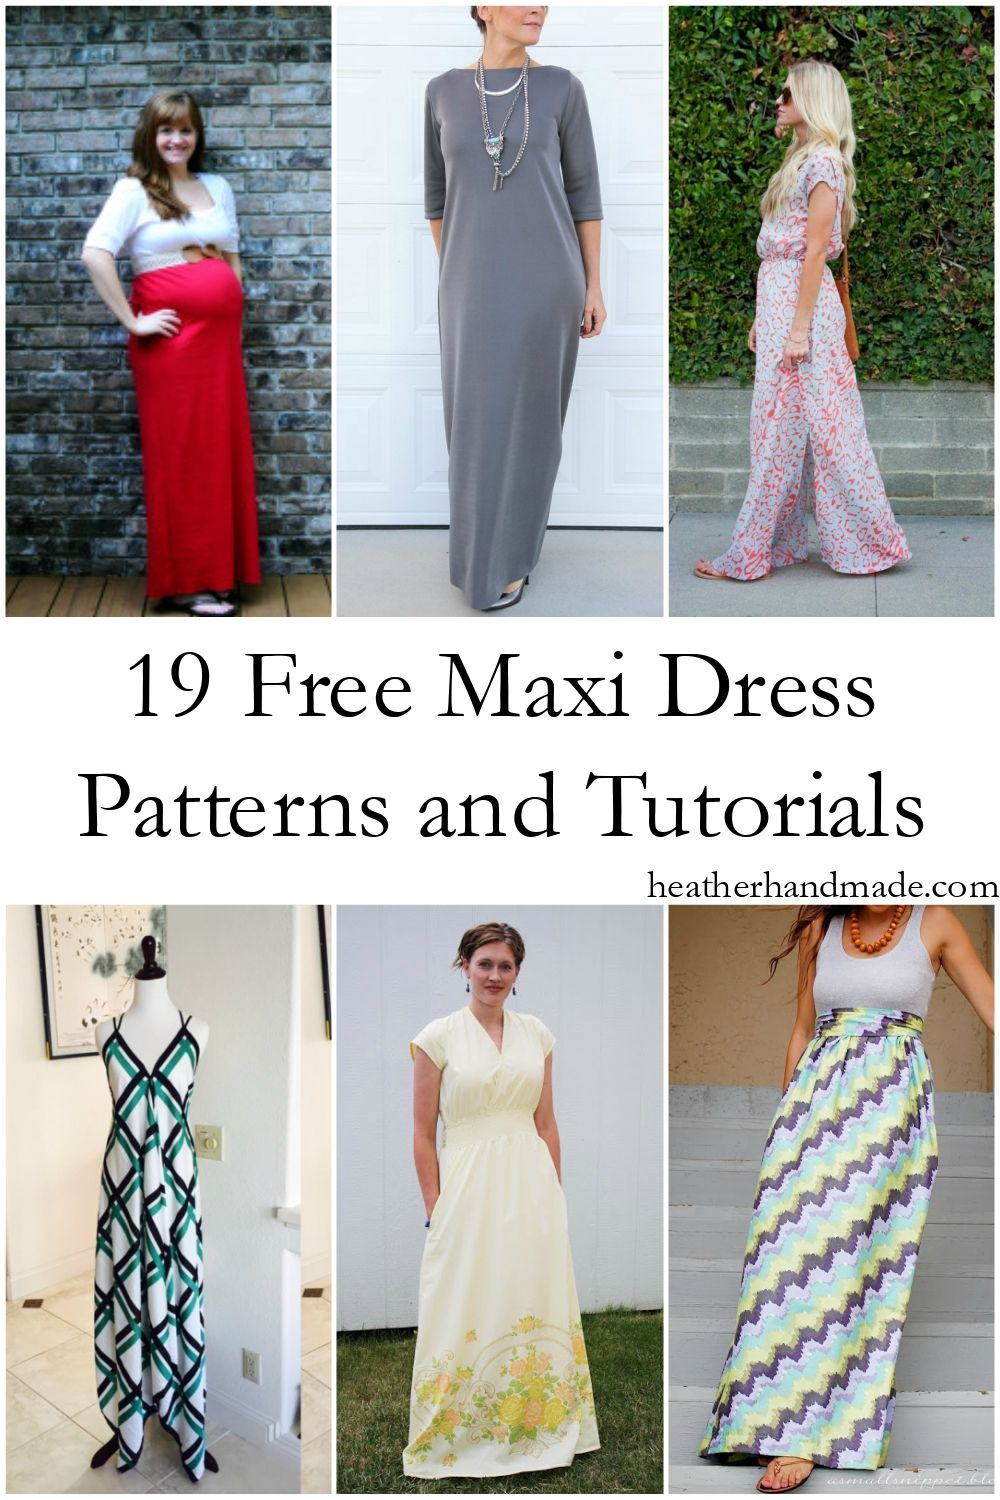 19 Free Maxi Dress Patterns | Costura | Pinterest | Costura, Ropa y ...